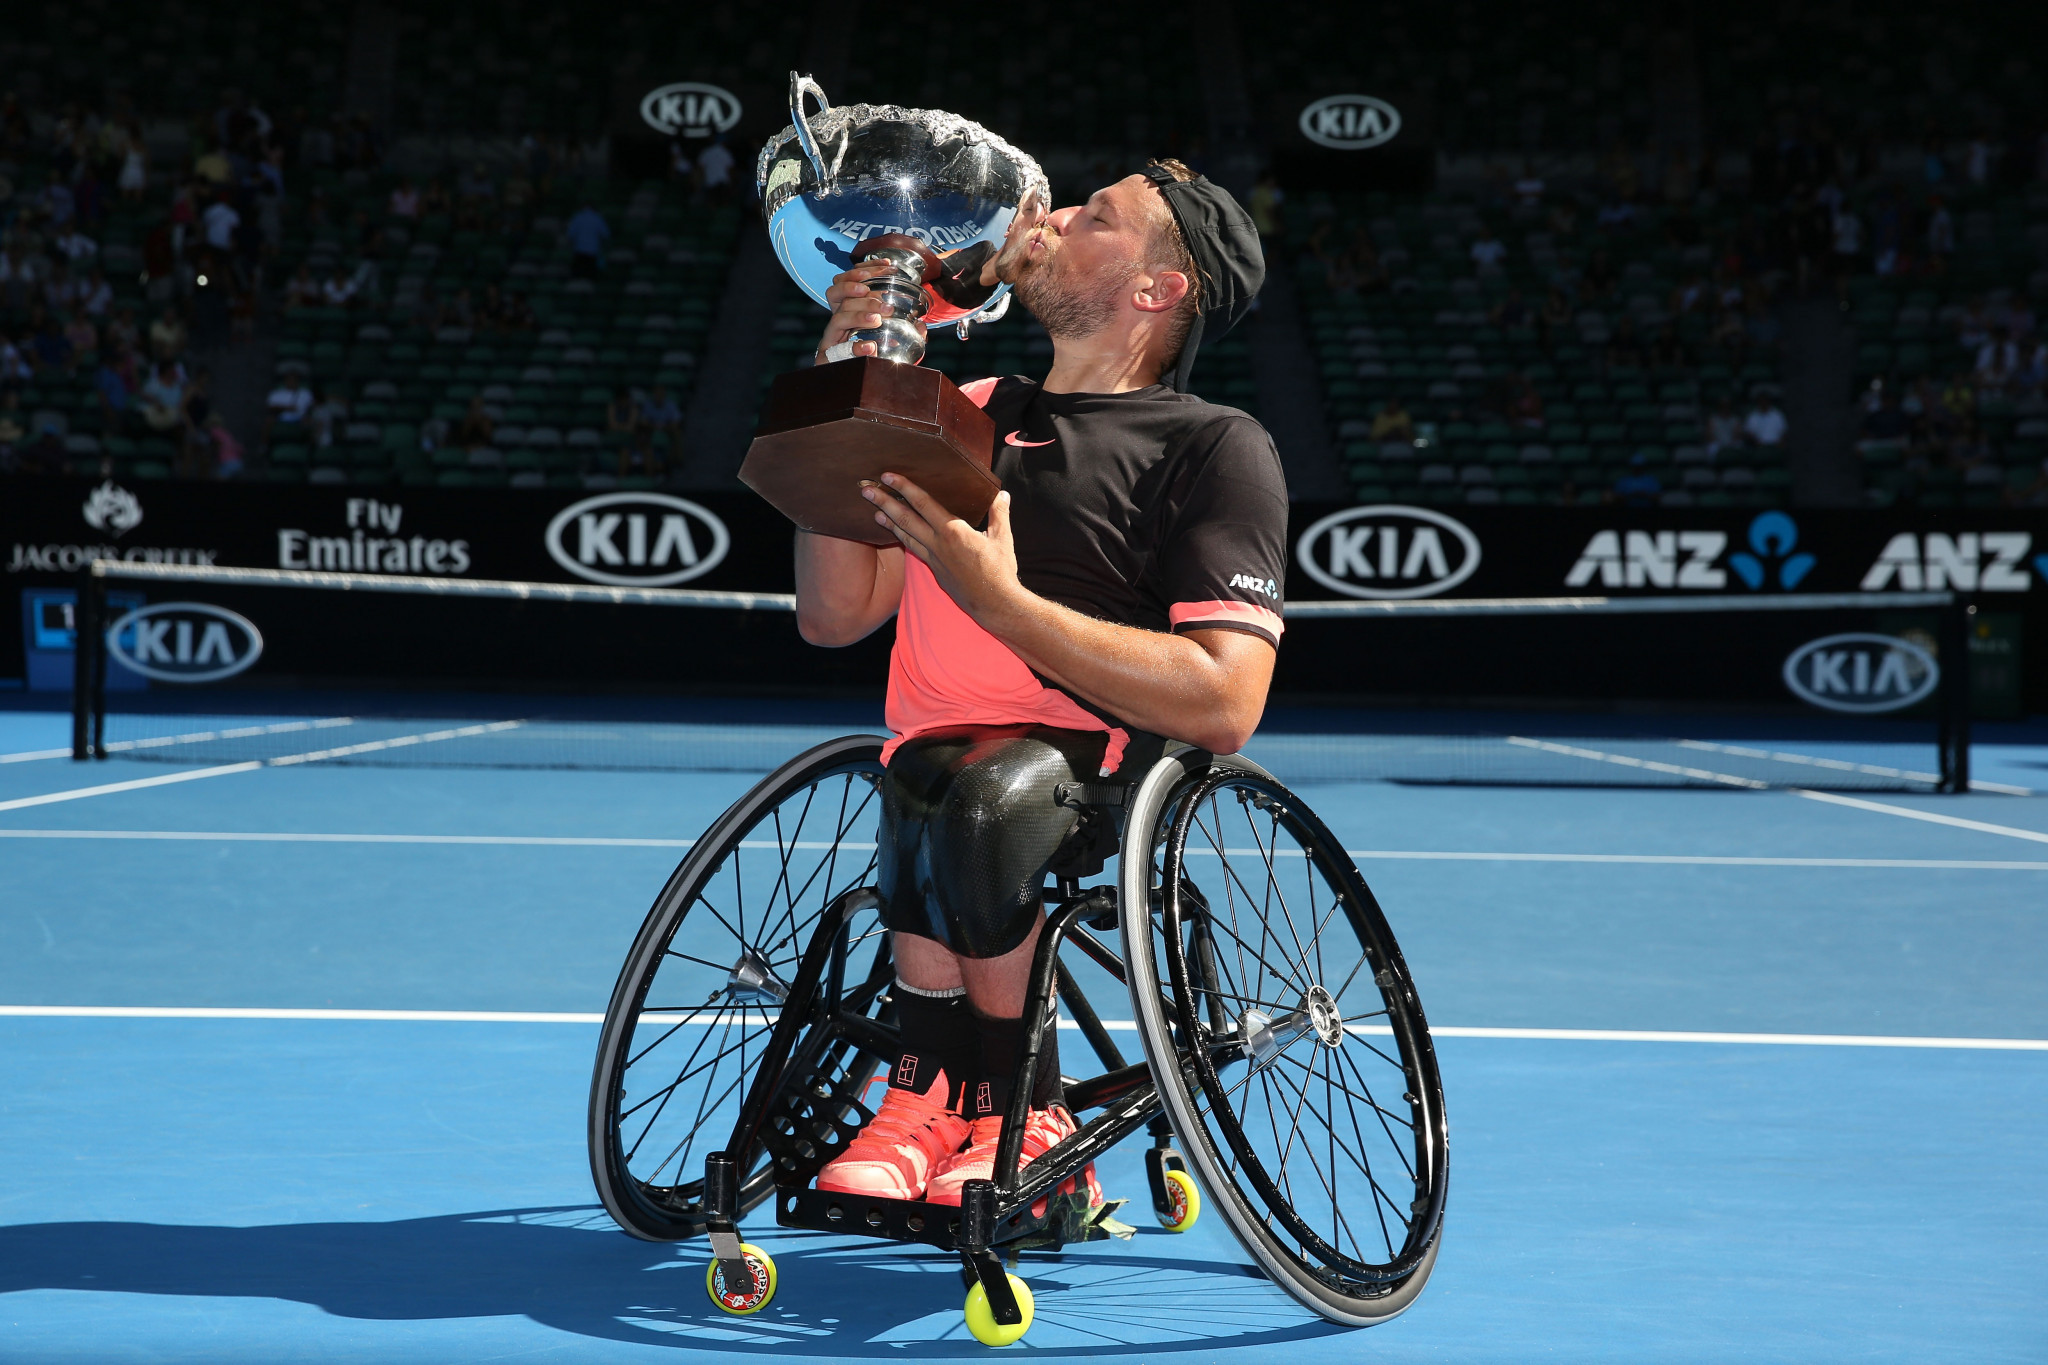 Dylan Alcott won his fourth straight Australian Open quad singles title in January ©Getty Images